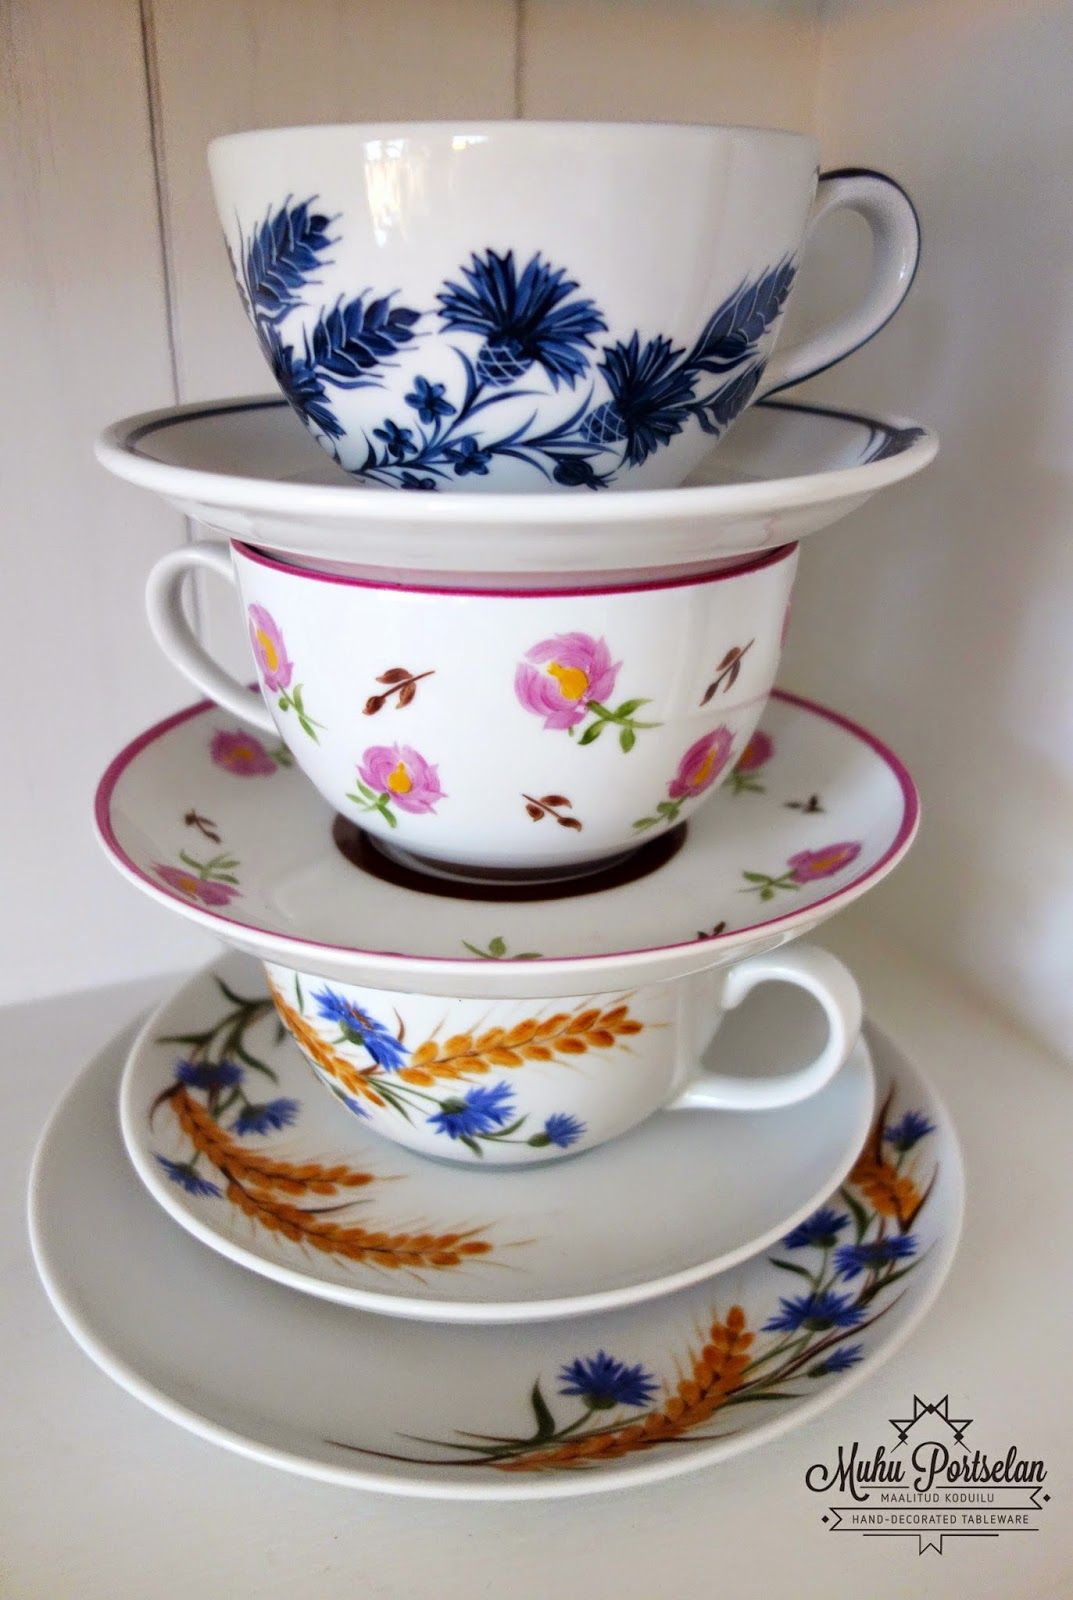 Examples of hand painted tea cups - www.muhuportselan.com